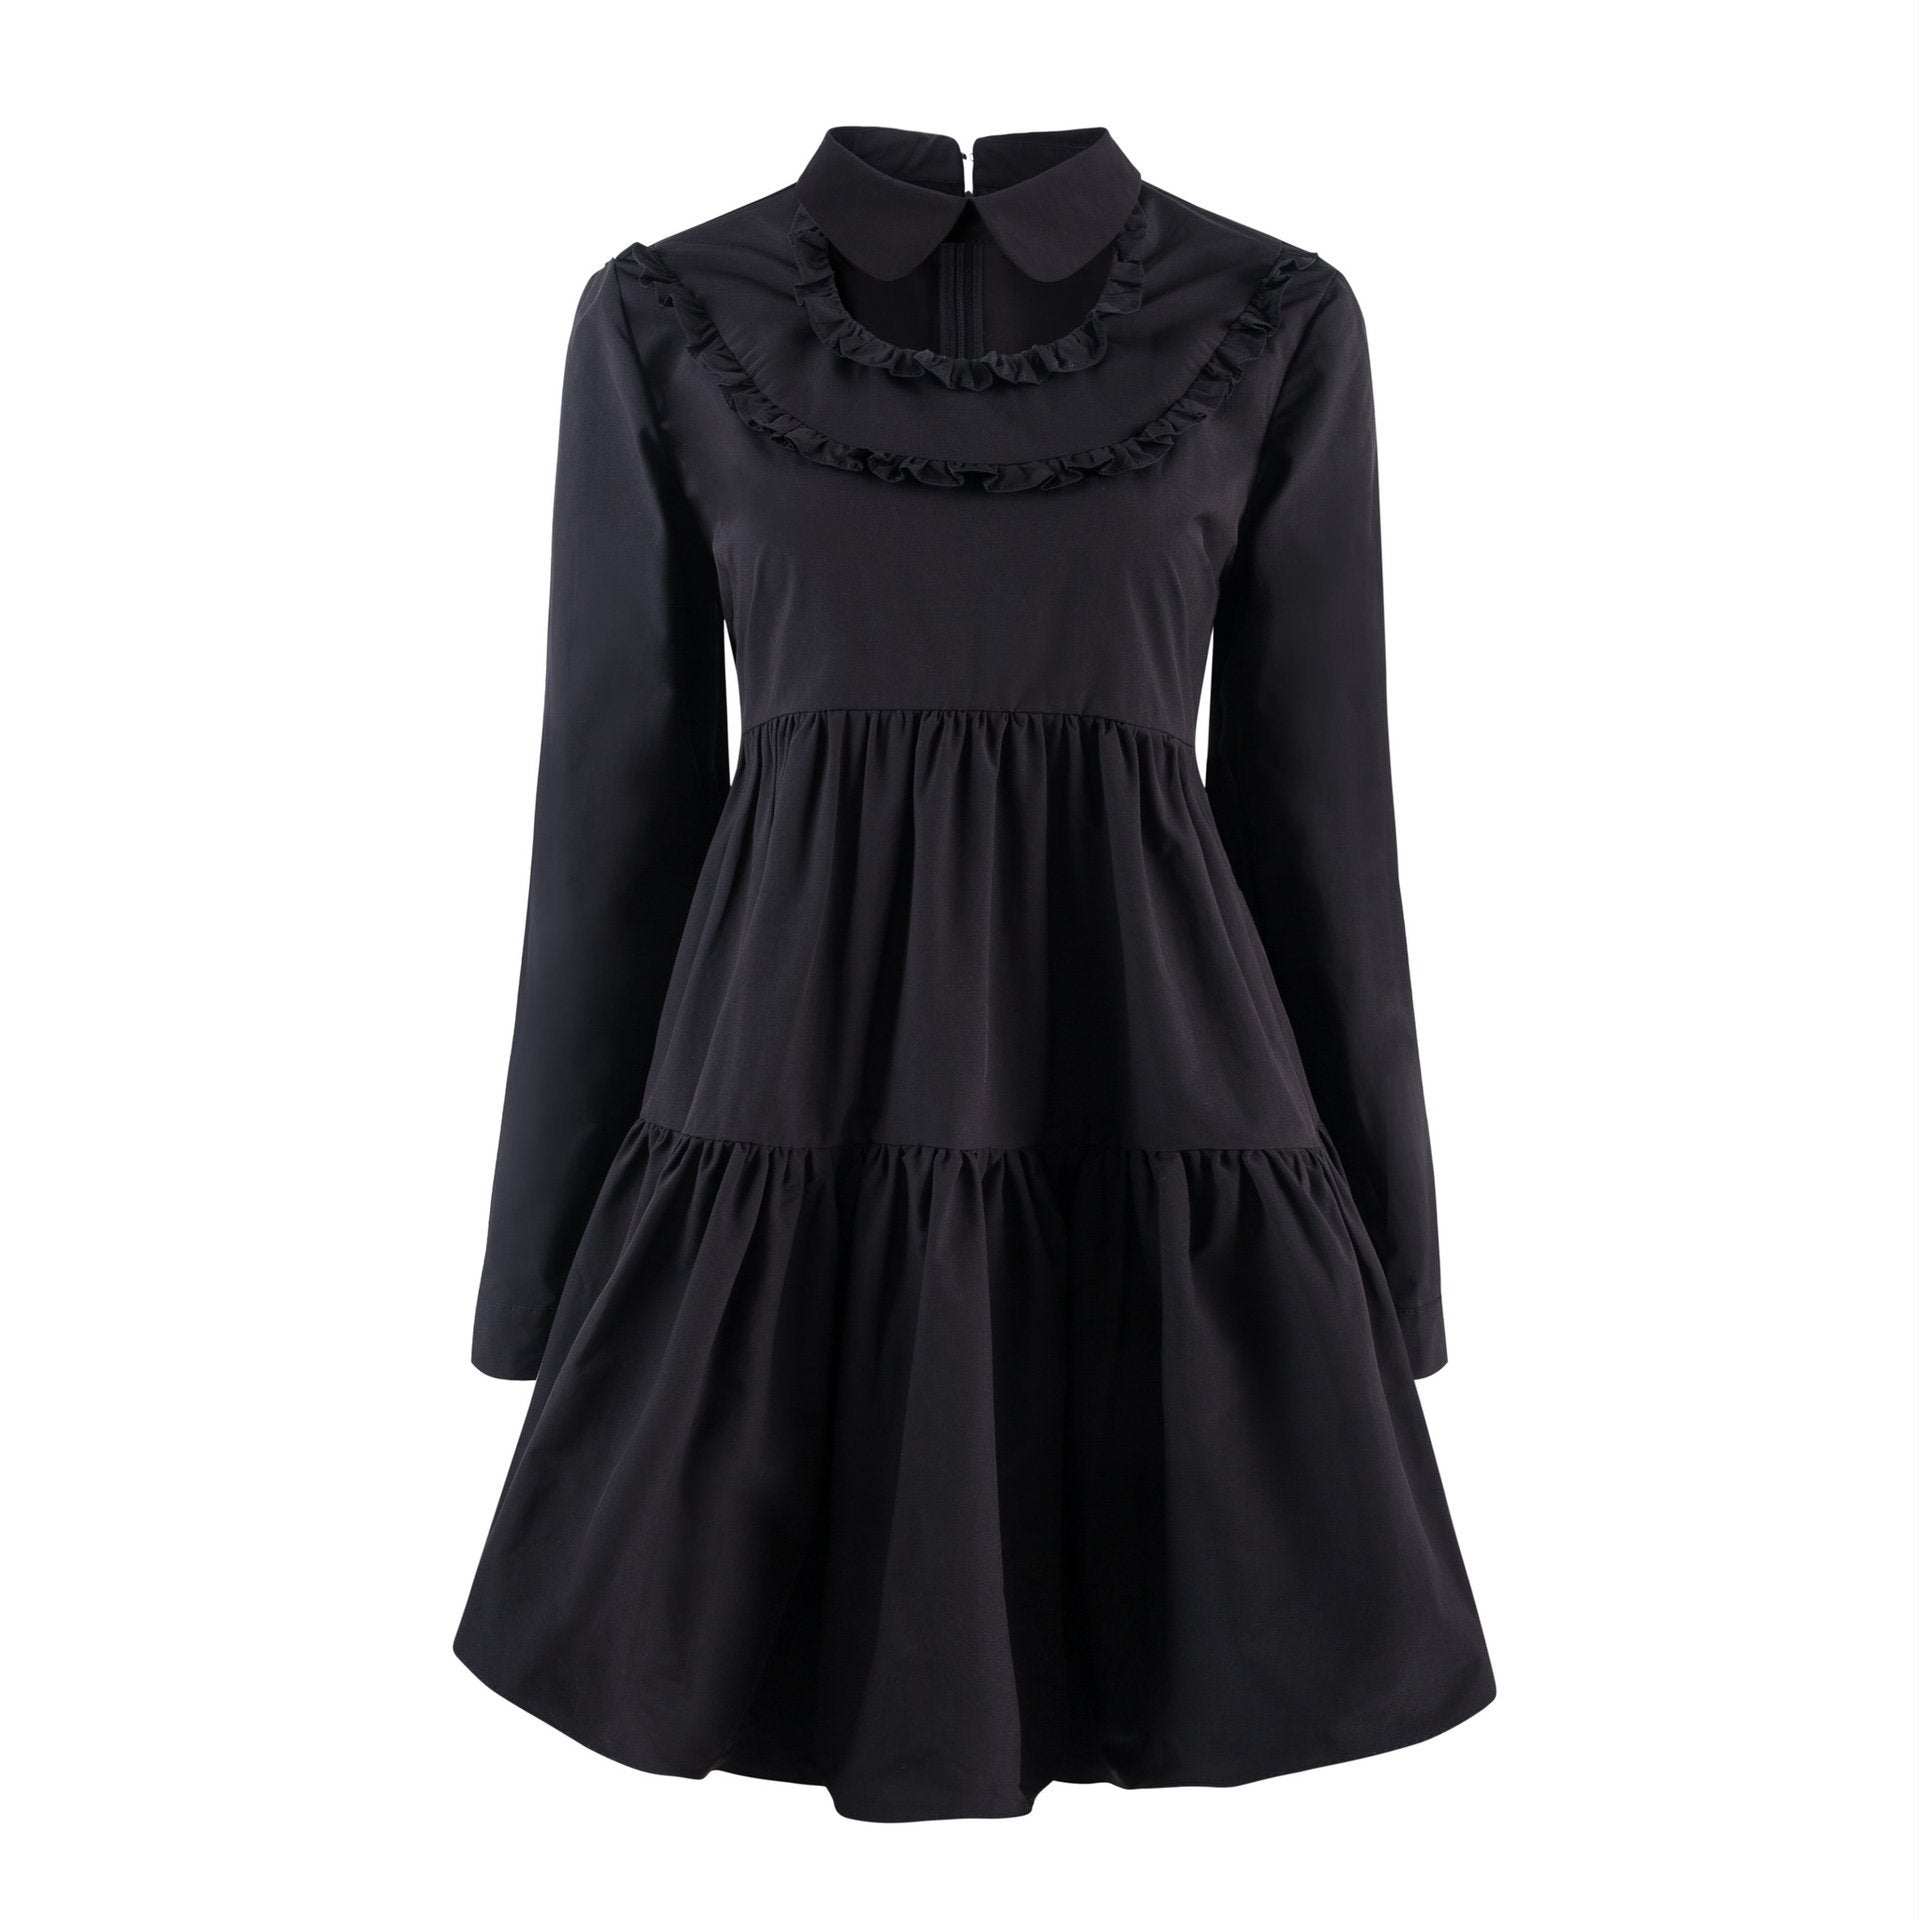 VIAS HERLIAN Black Cut-Out Shirt Dress | MADA IN CHINA